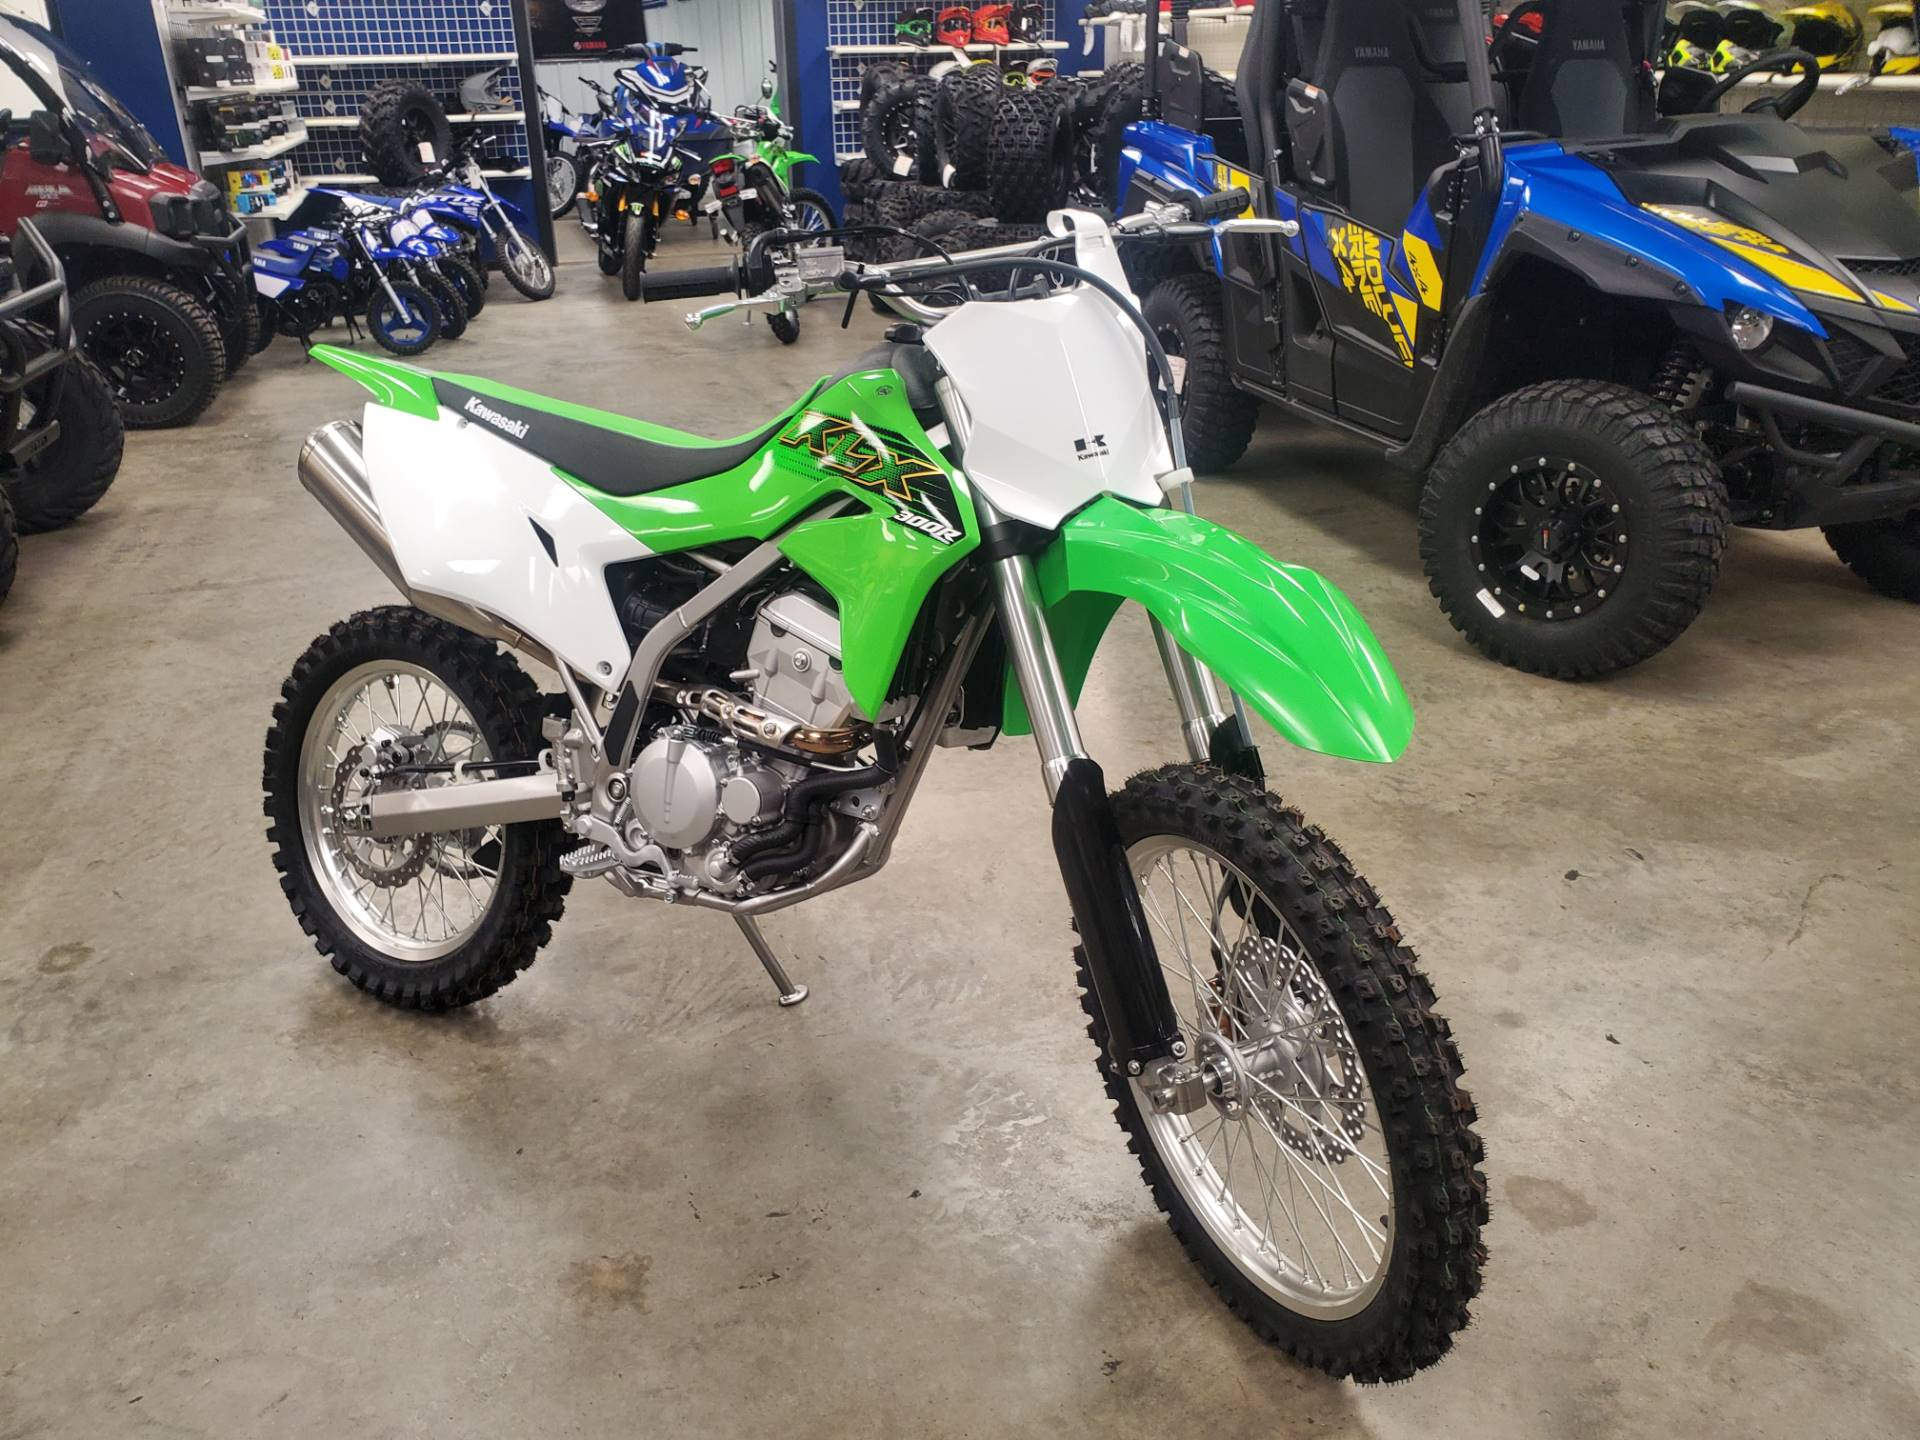 2020 Kawasaki KLX 300R in Herrin, Illinois - Photo 3